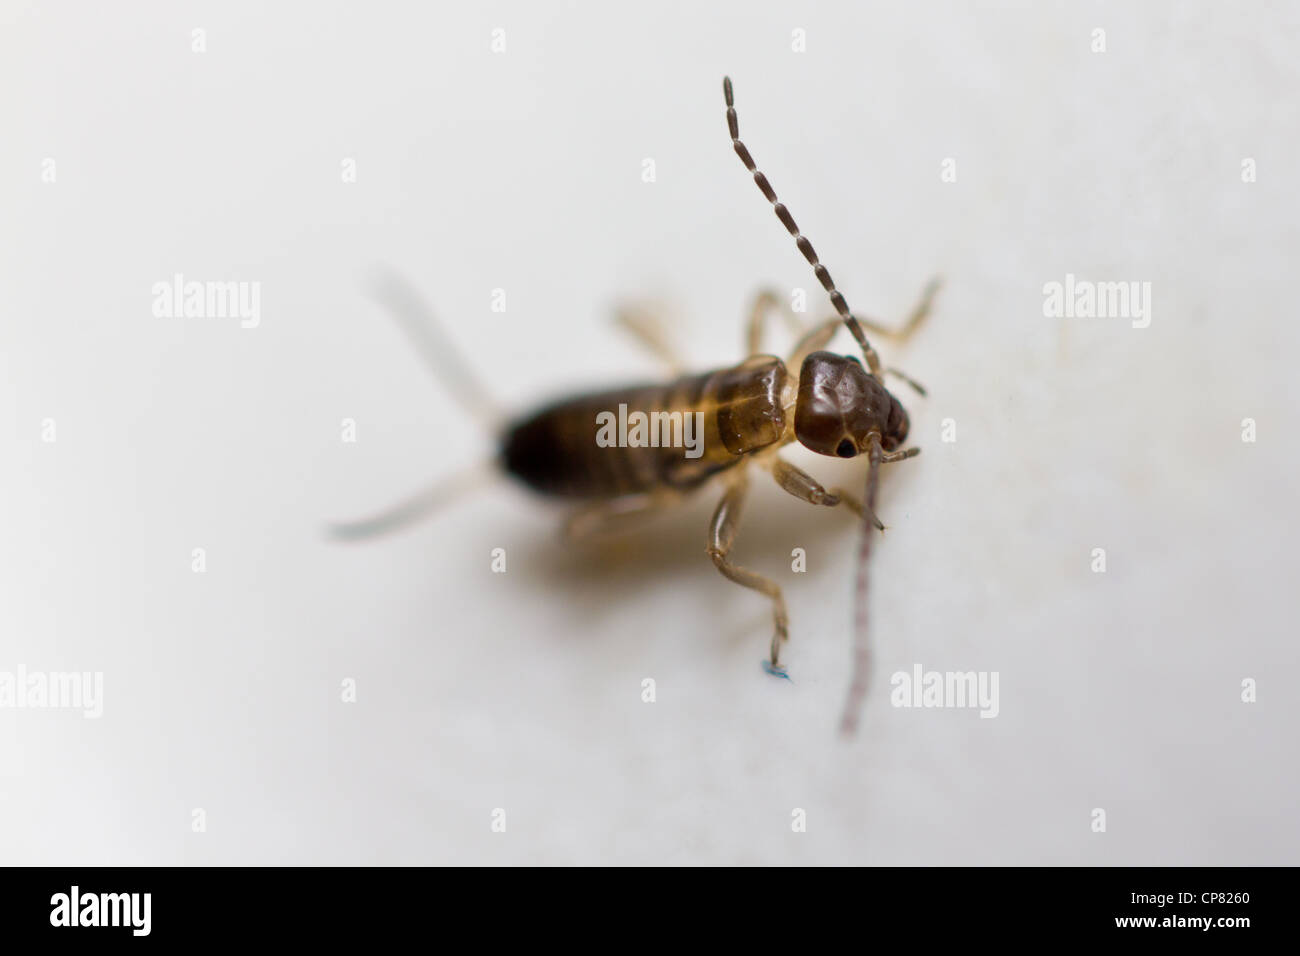 Macro crawling insect in sink - Stock Image